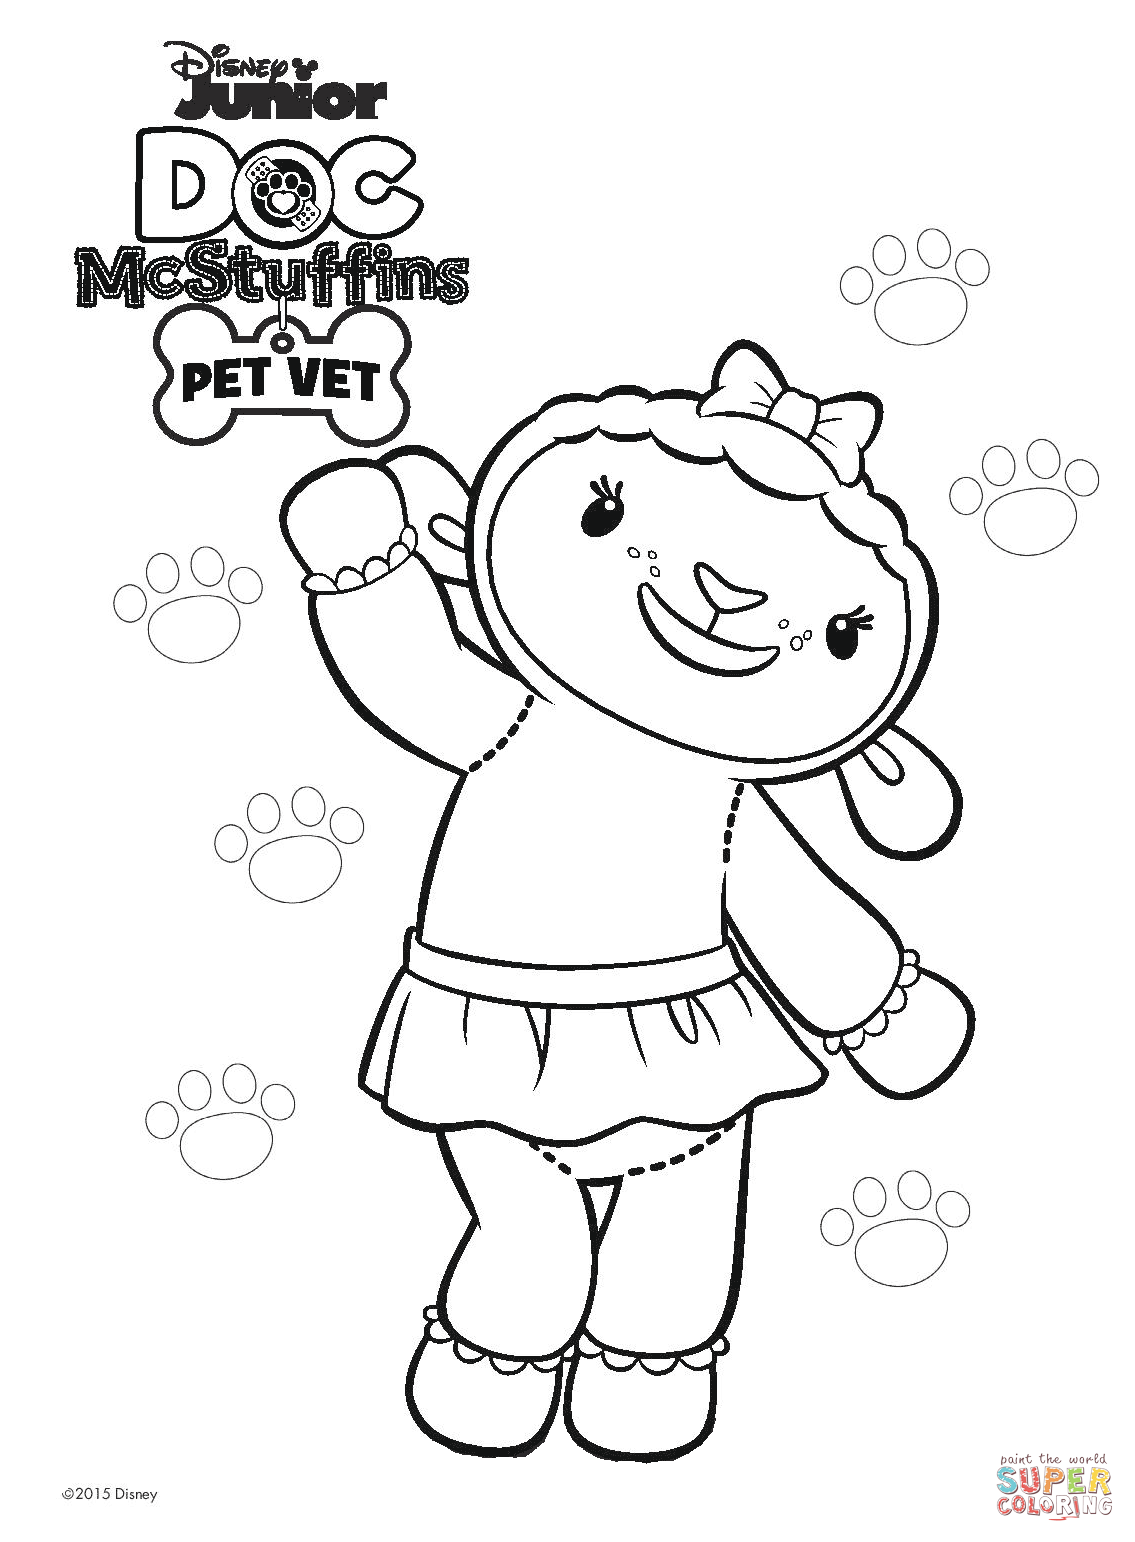 Doc Mcstuffins Printable Coloring Pages At Getcolorings